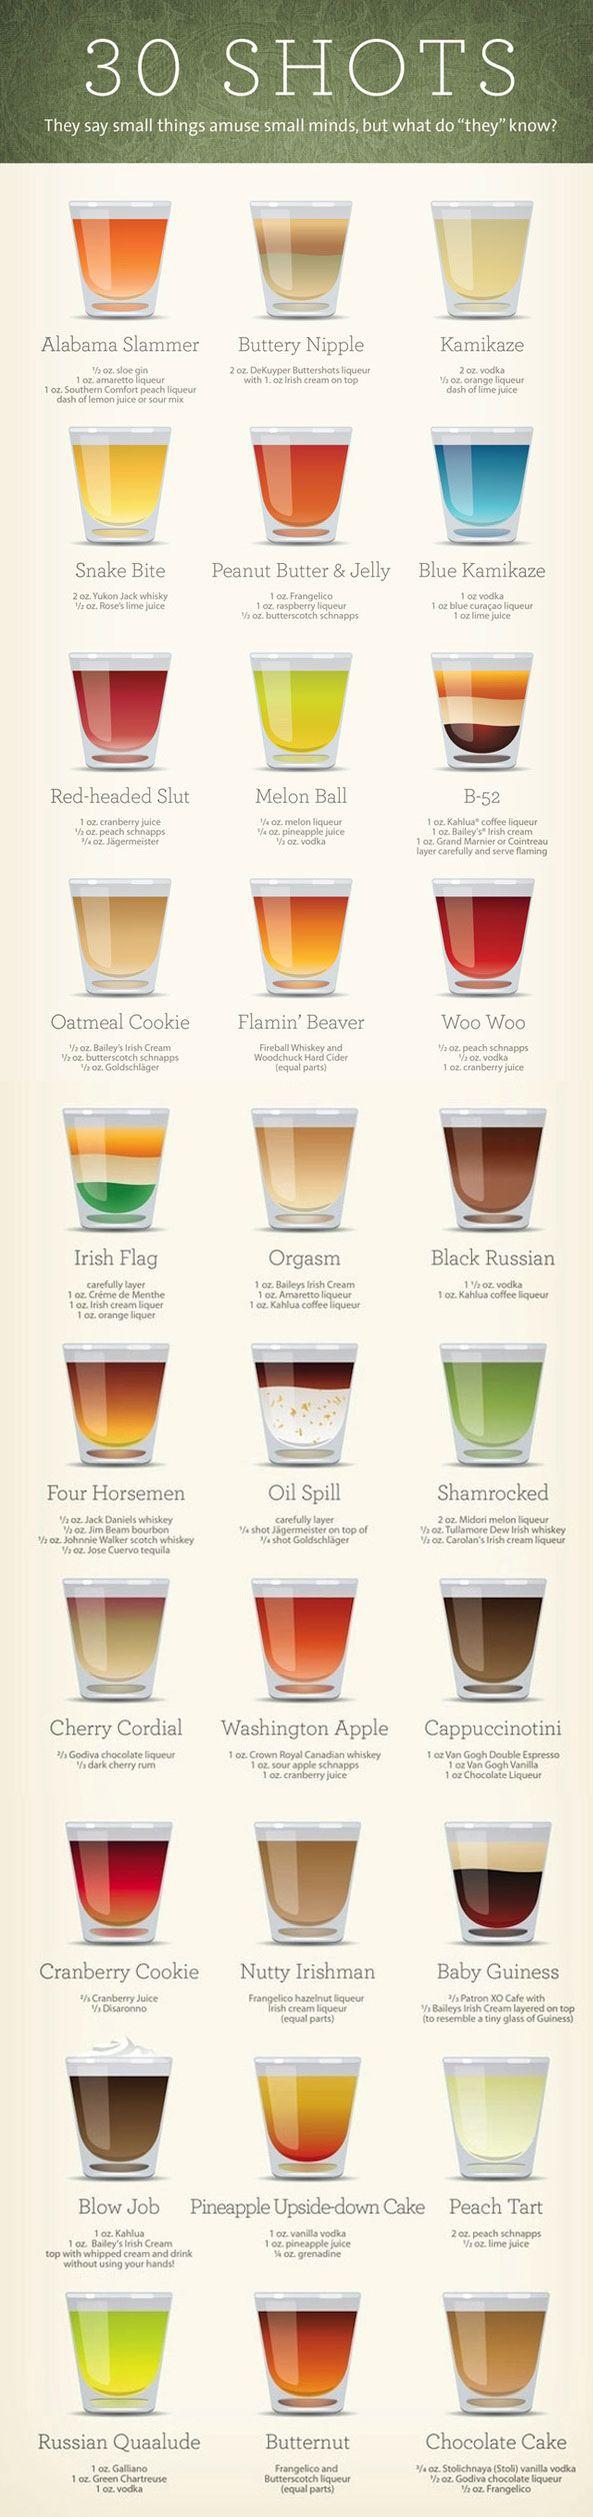 How To Make 30 Different Kinds Of Shots In One Handy Infographic. Alcoholic Drinks.